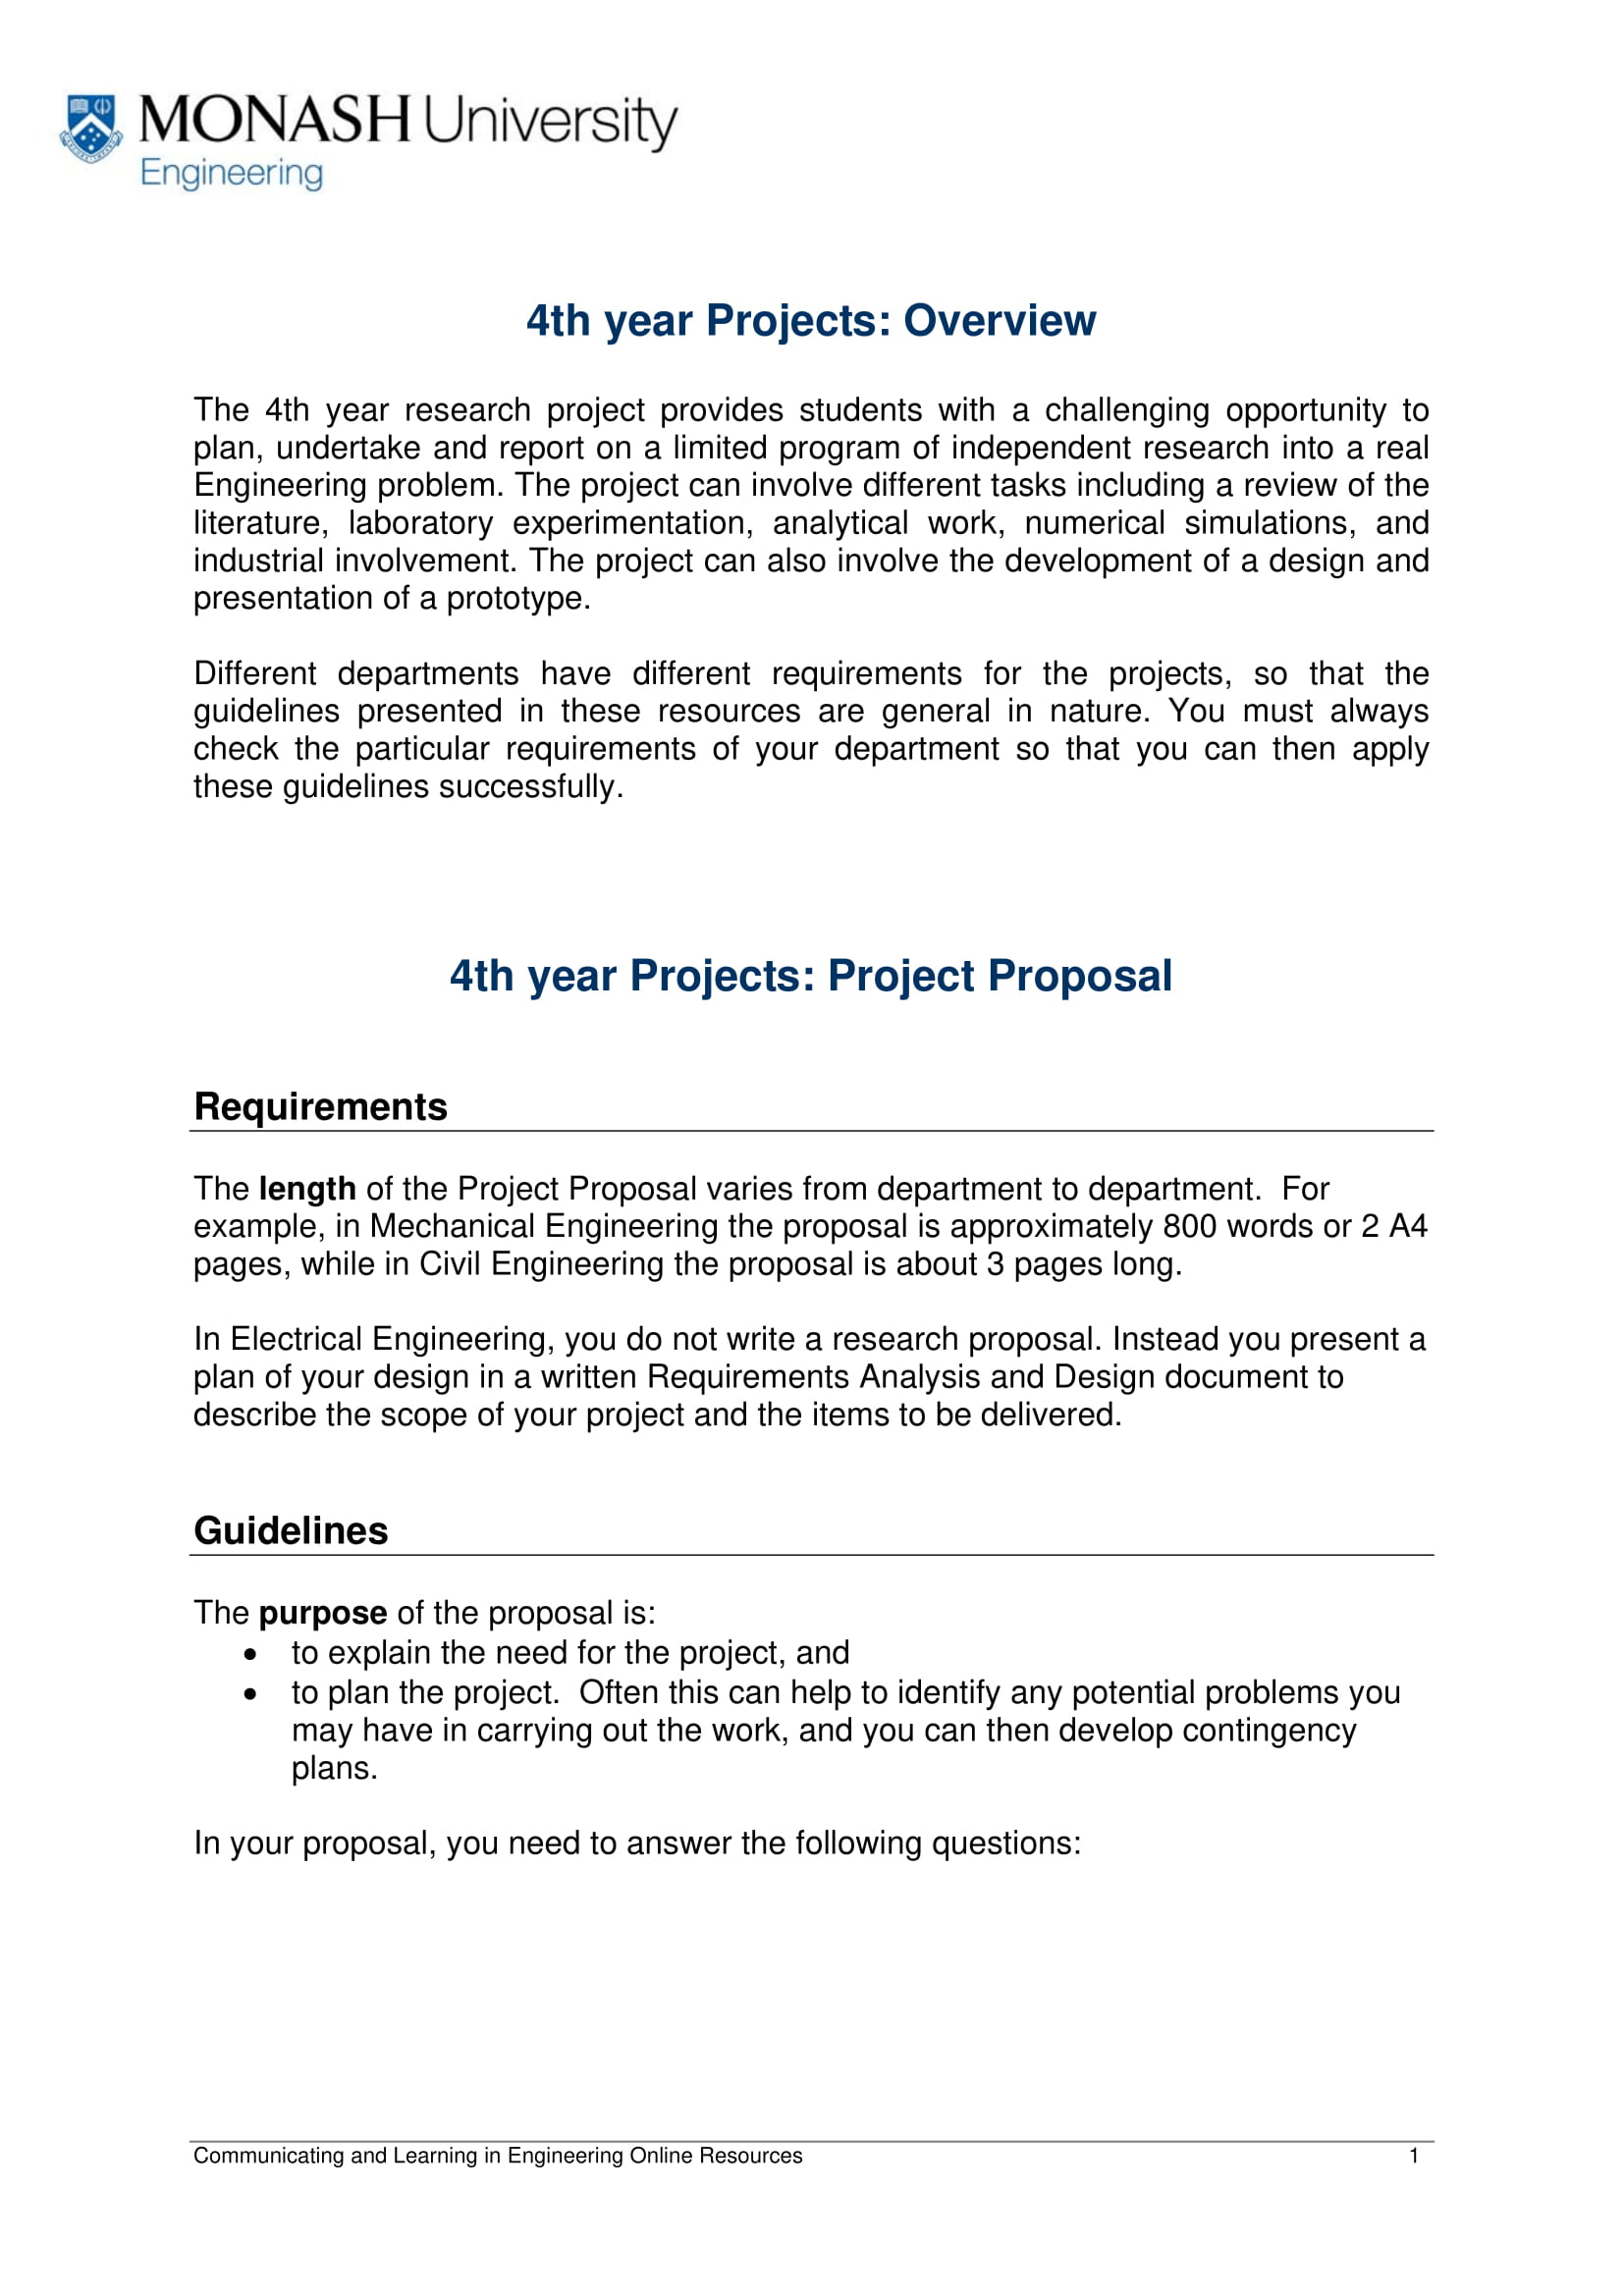 4th year project proposal overview example 1